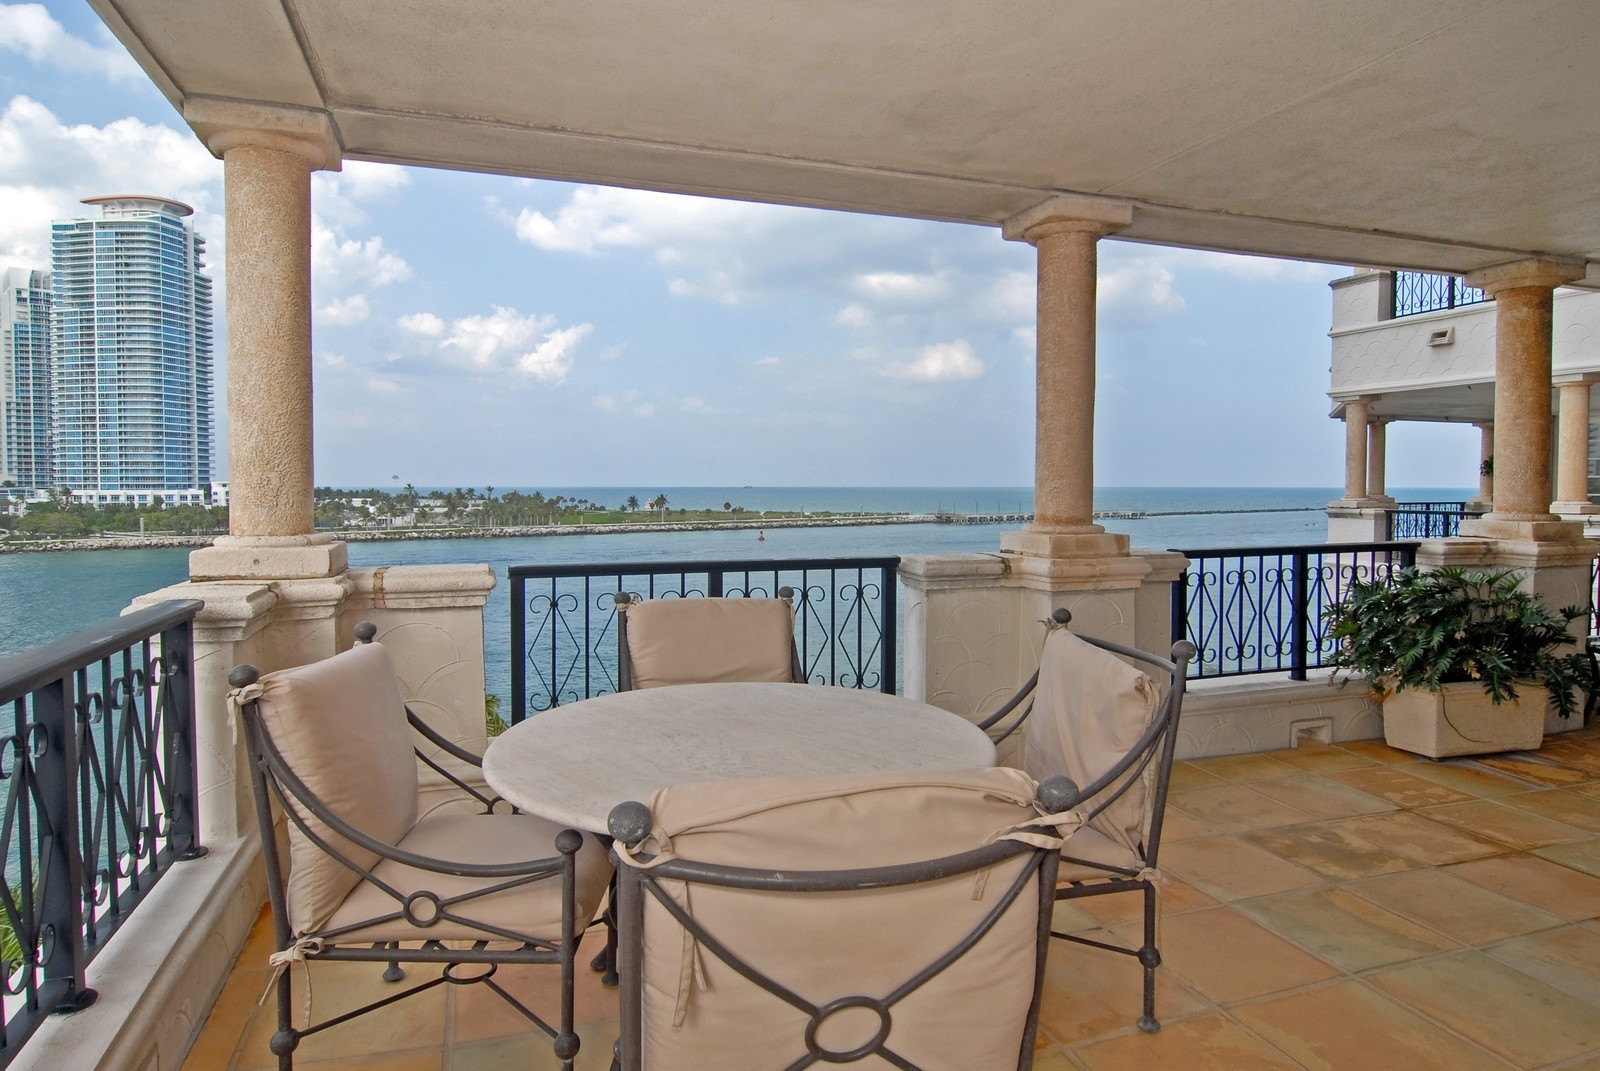 Real Estate Photography - 7251 Fisher Island Dr, Fisher Island, FL, 33109 - Terrace